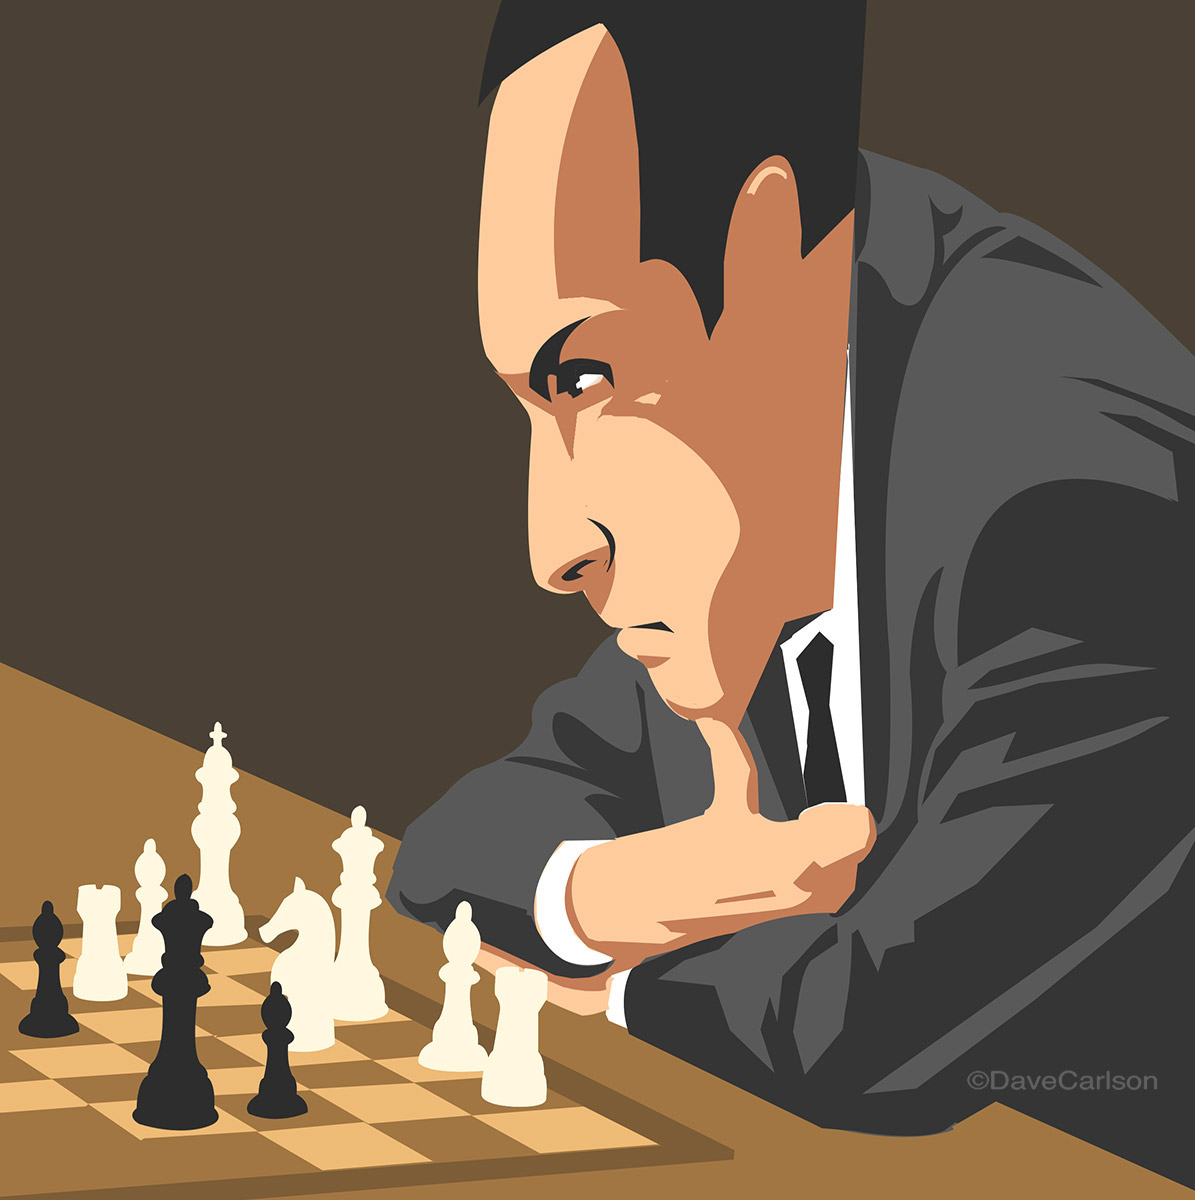 Illustration of Soviet Latvian chess grand master Tikhail Tal, who was active from the 1950's through the 1980's.